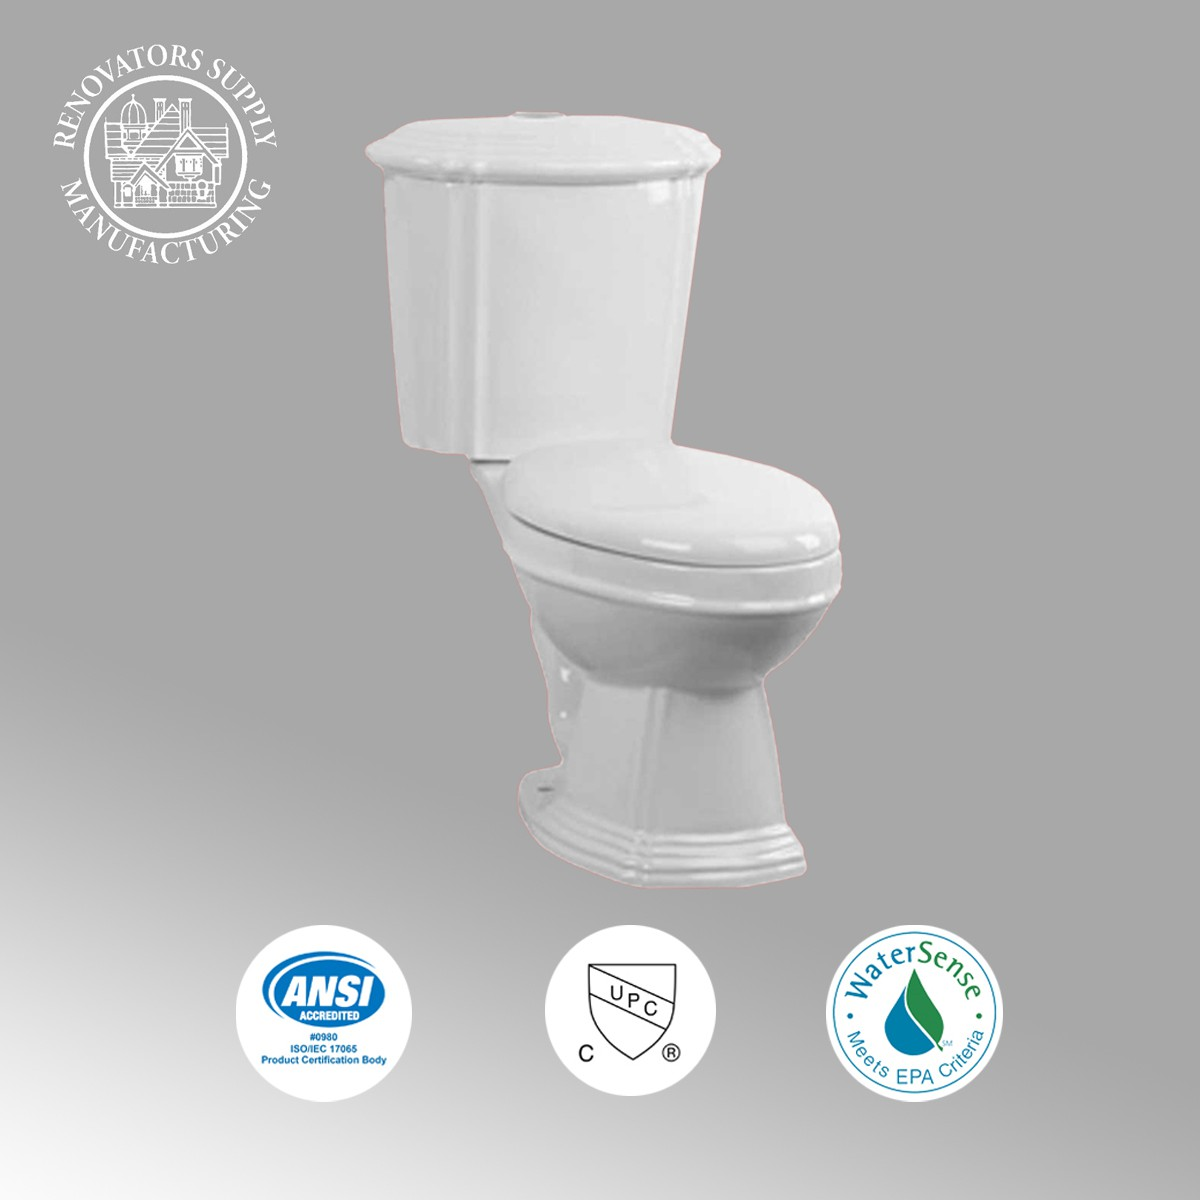 Awe Inspiring White Sheffield Round Dual Top Flush Toilet Measures 31 3 4 Inch Height X 25 1 2 Inch Projection Beatyapartments Chair Design Images Beatyapartmentscom